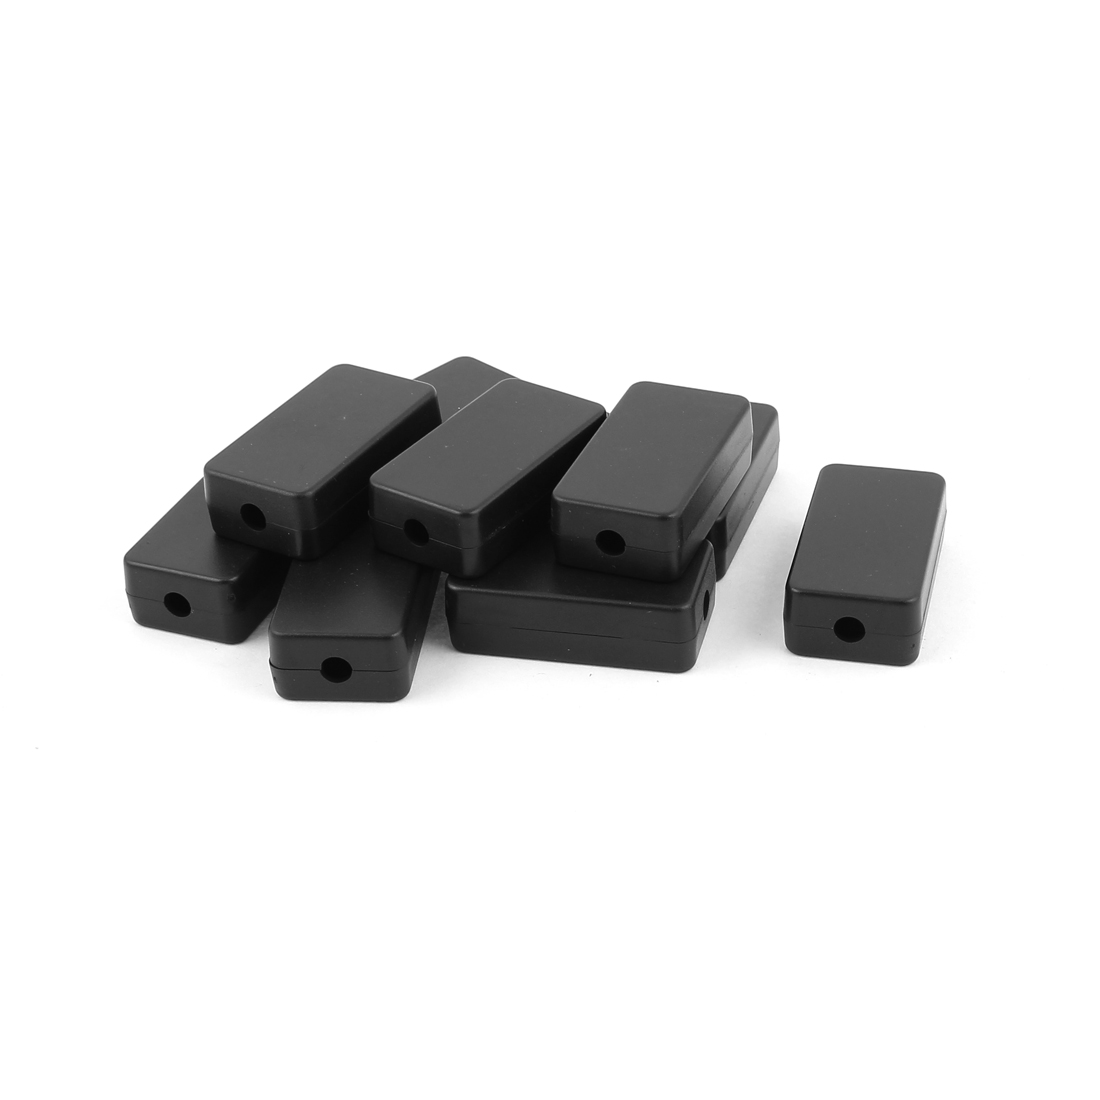 10 Pcs 48mm x 26mm x 15mm Rectangular Plastic Electric Case DIY Junction Box Black